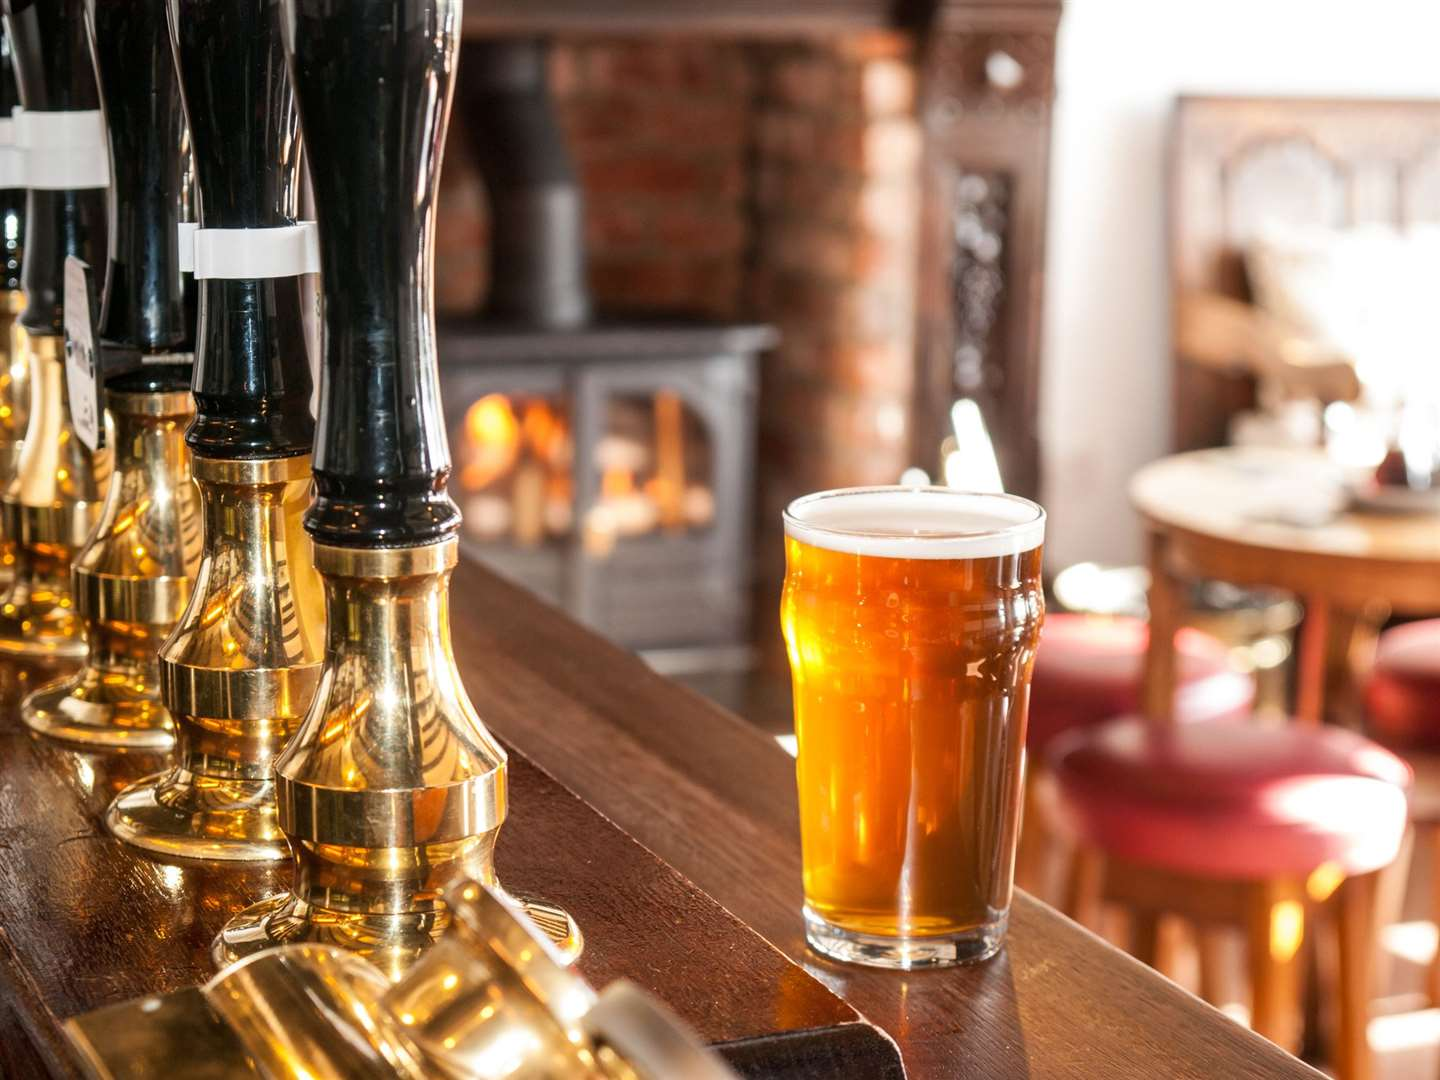 Get your pint and pull up a bar stool at the Stay Inn